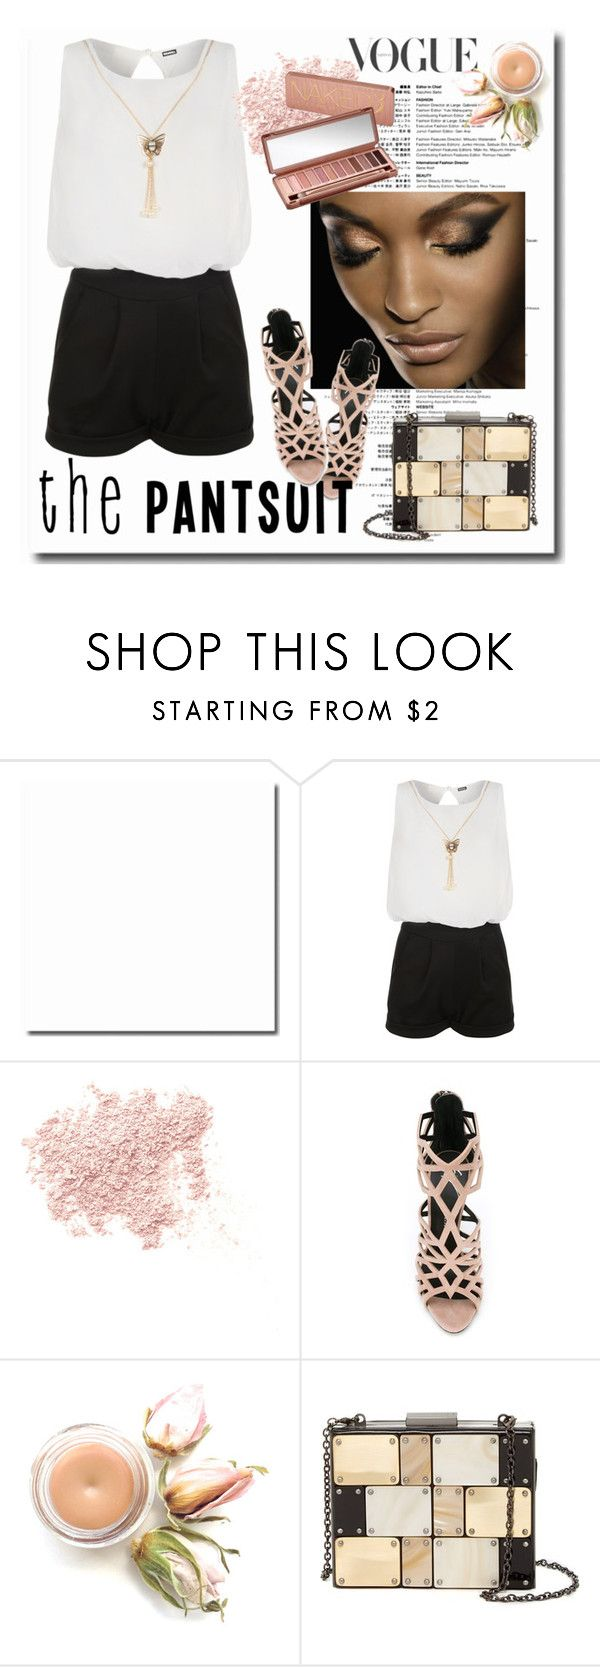 """""""Untitled #603"""" by looks-lie ❤ liked on Polyvore featuring WearAll, Bare Escentuals, Urban Decay, Giuseppe Zanotti and Sondra Roberts"""